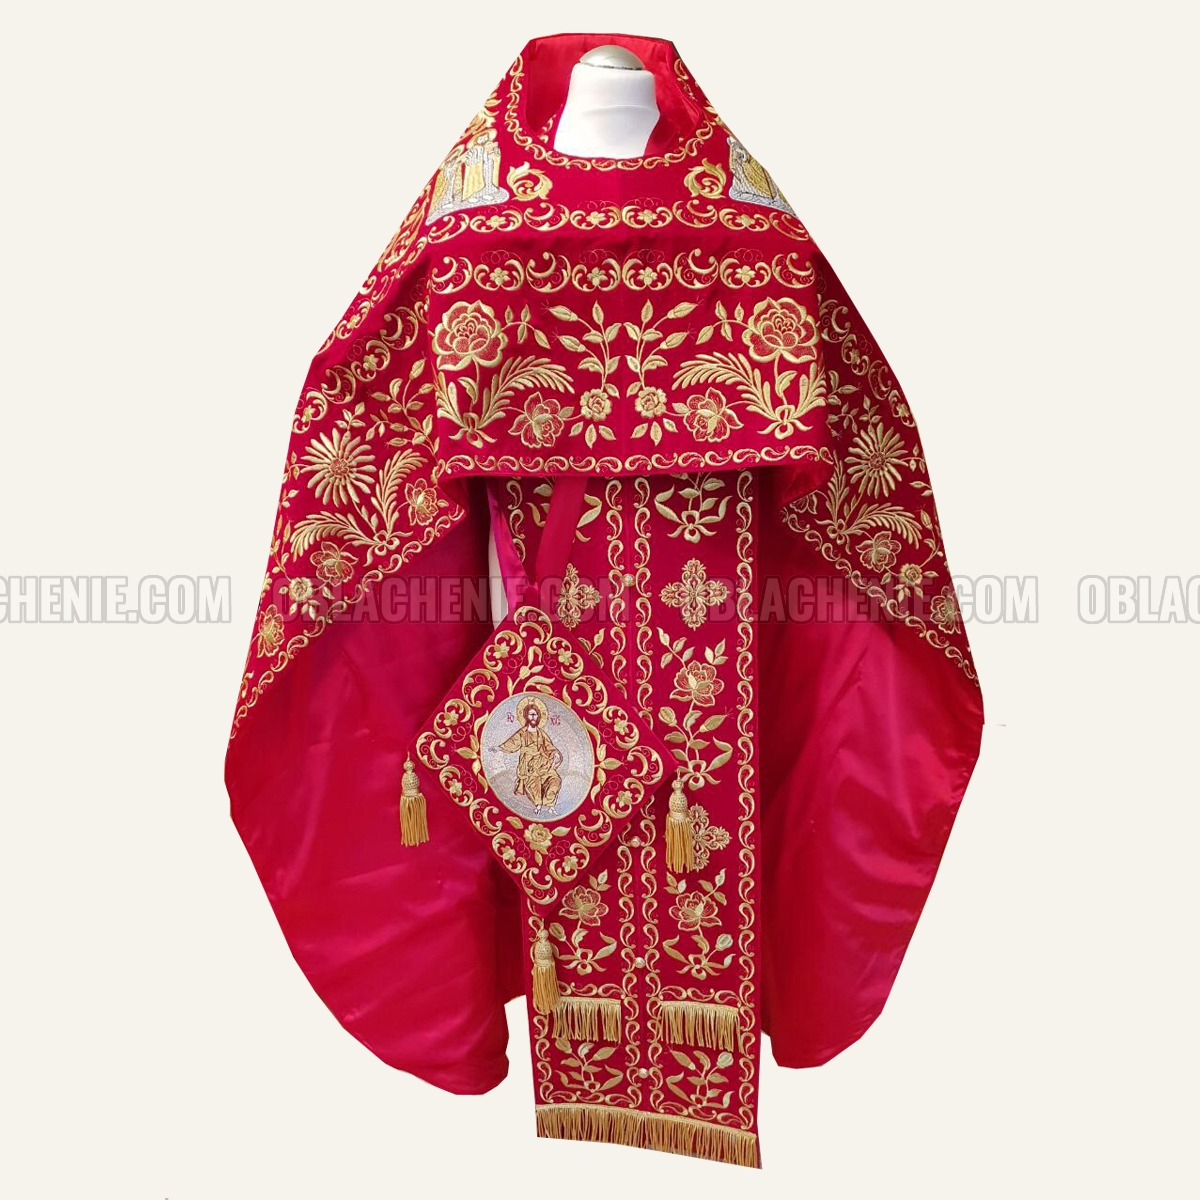 Embroidered priest's vestments 10175